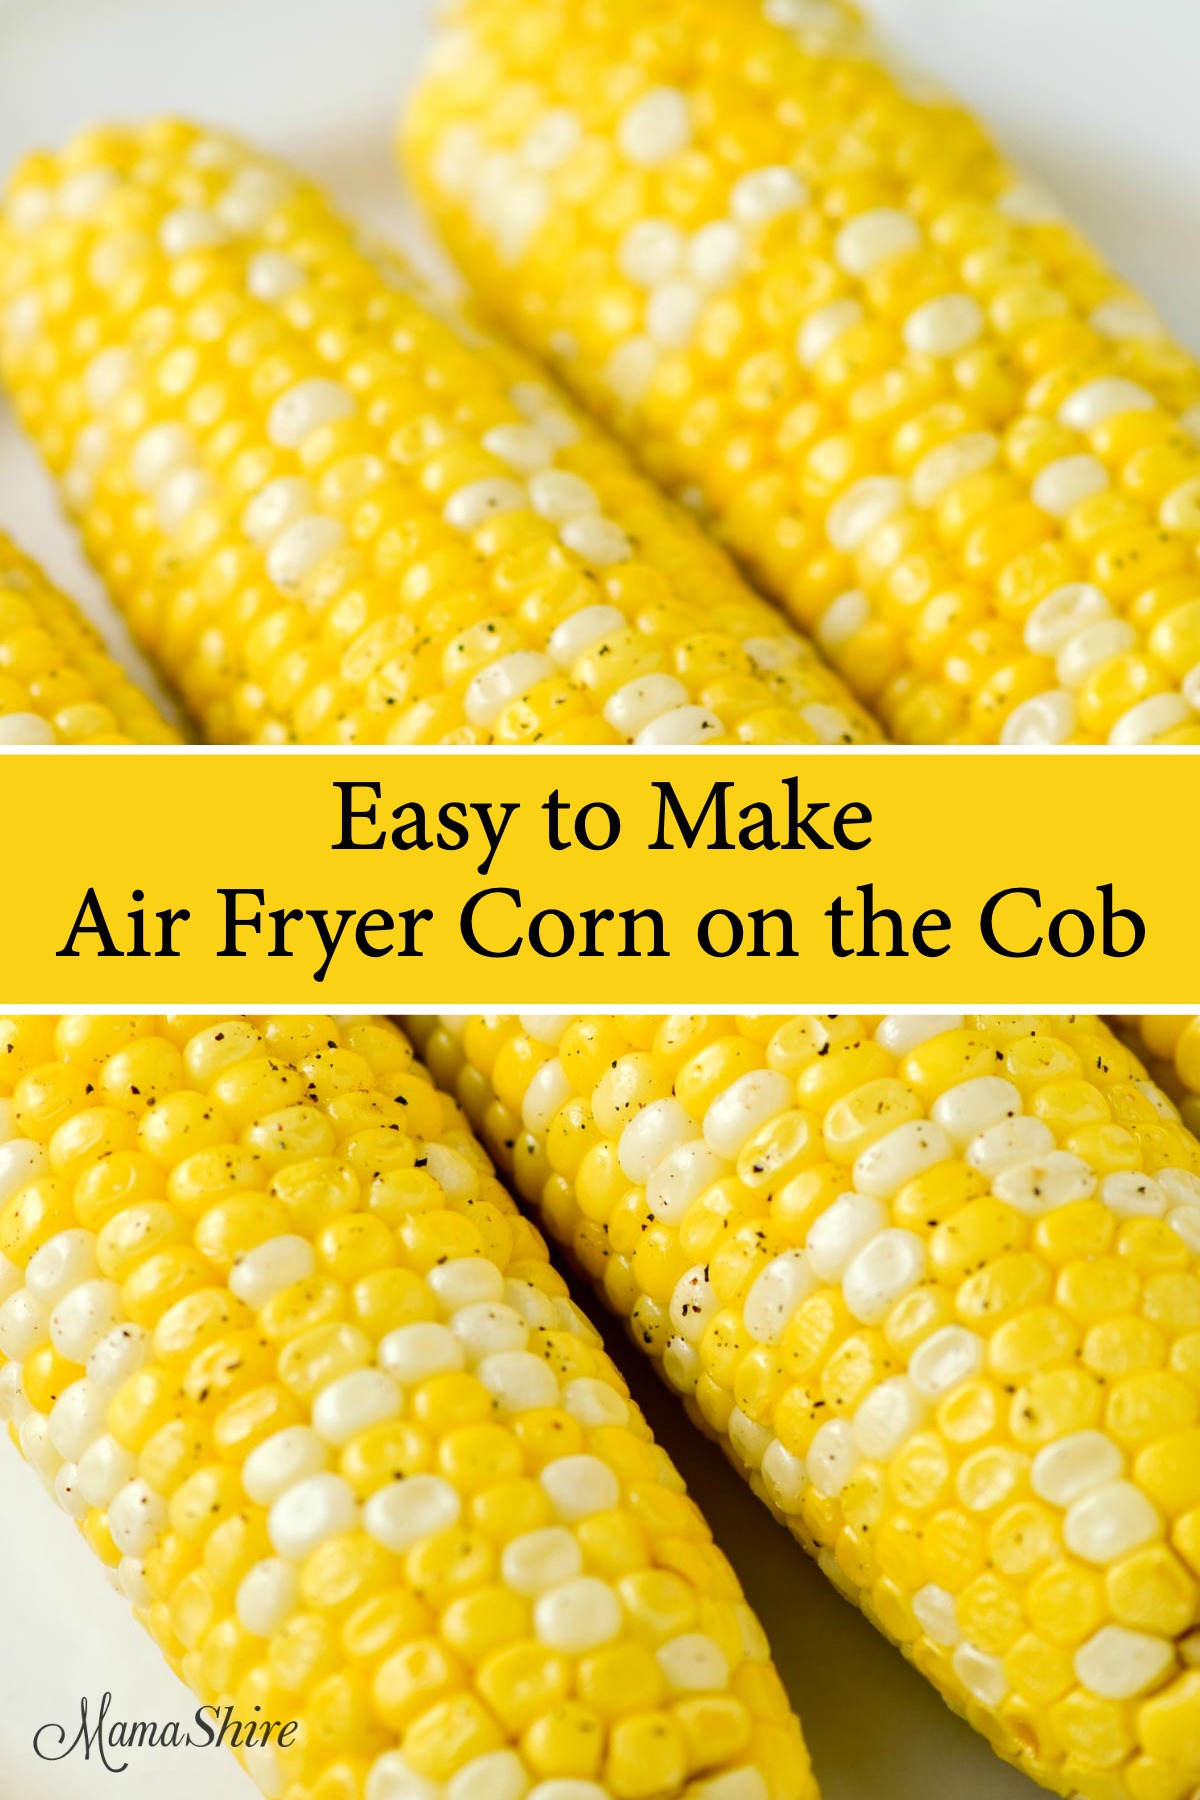 Corn on the cob made in an air fryer.